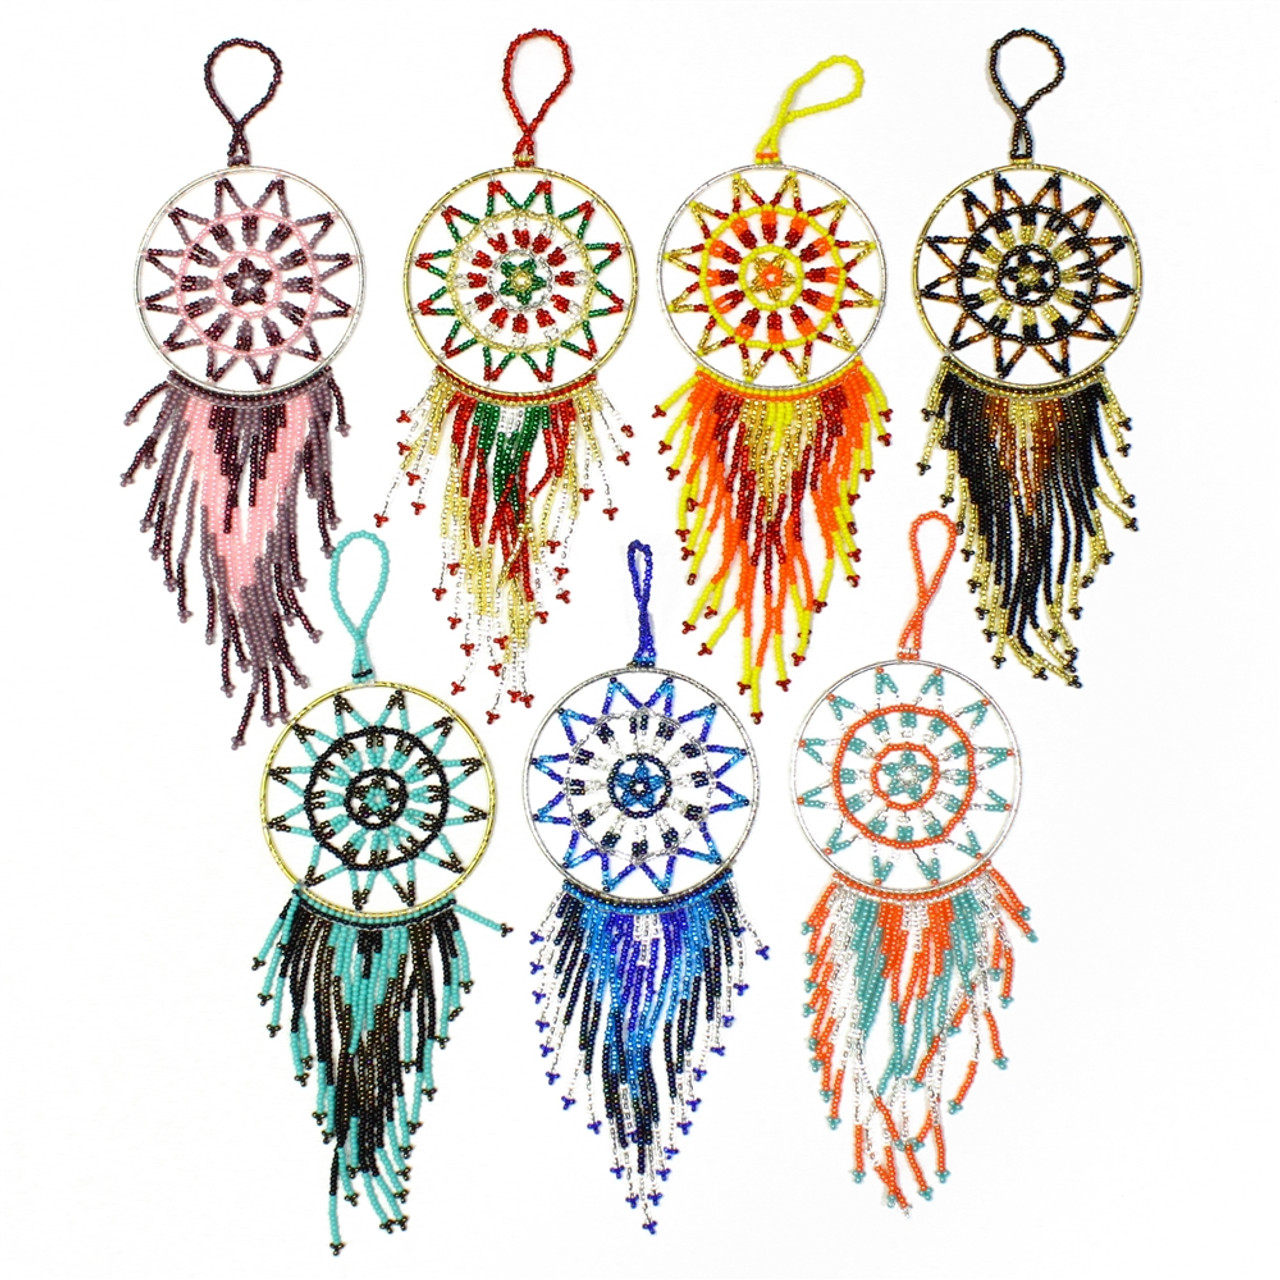 - Whimsical And Delicate Dream Catcher Crystal And Glass Ornament 4